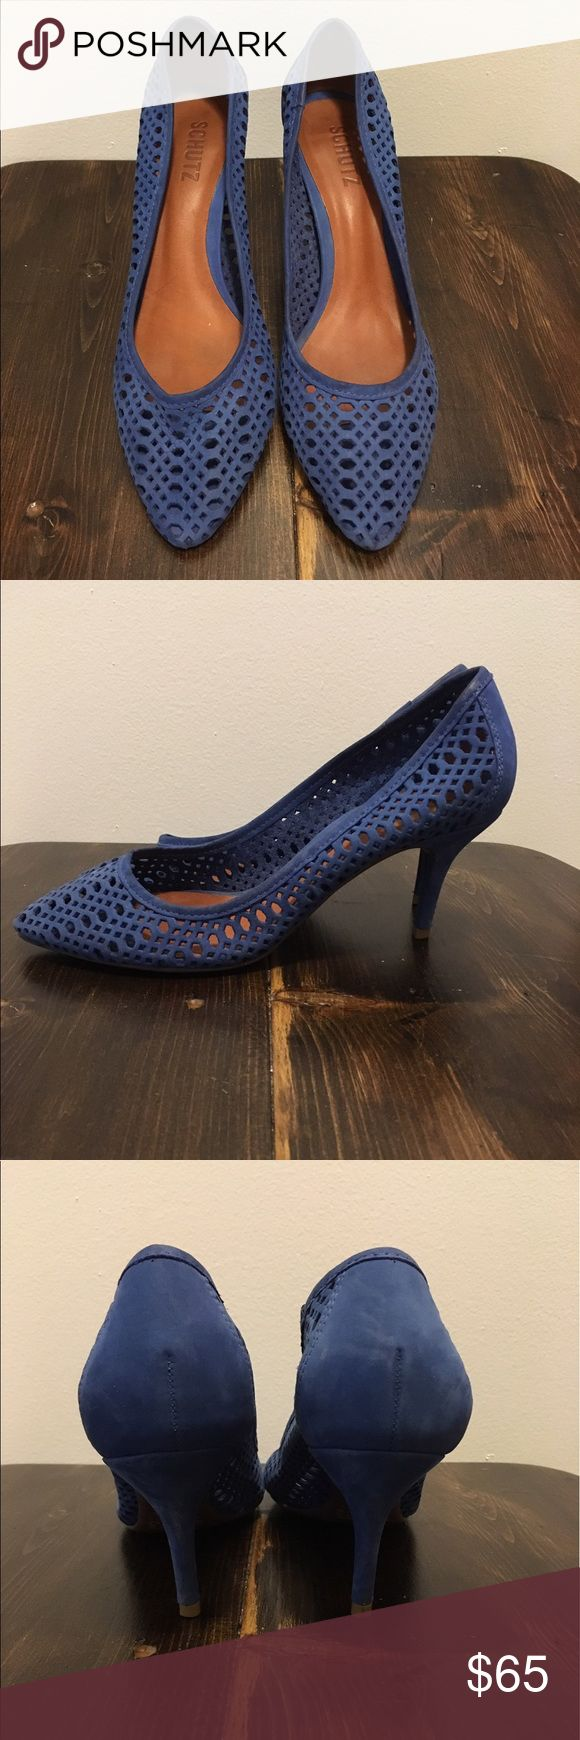 Brazilian blue suede leather pumps heels These heels are what you need to give your outfit that pop of color! Flattering 2 inch heel and pointy toe elongates your legs. Worn only twice! SCHUTZ Shoes Heels